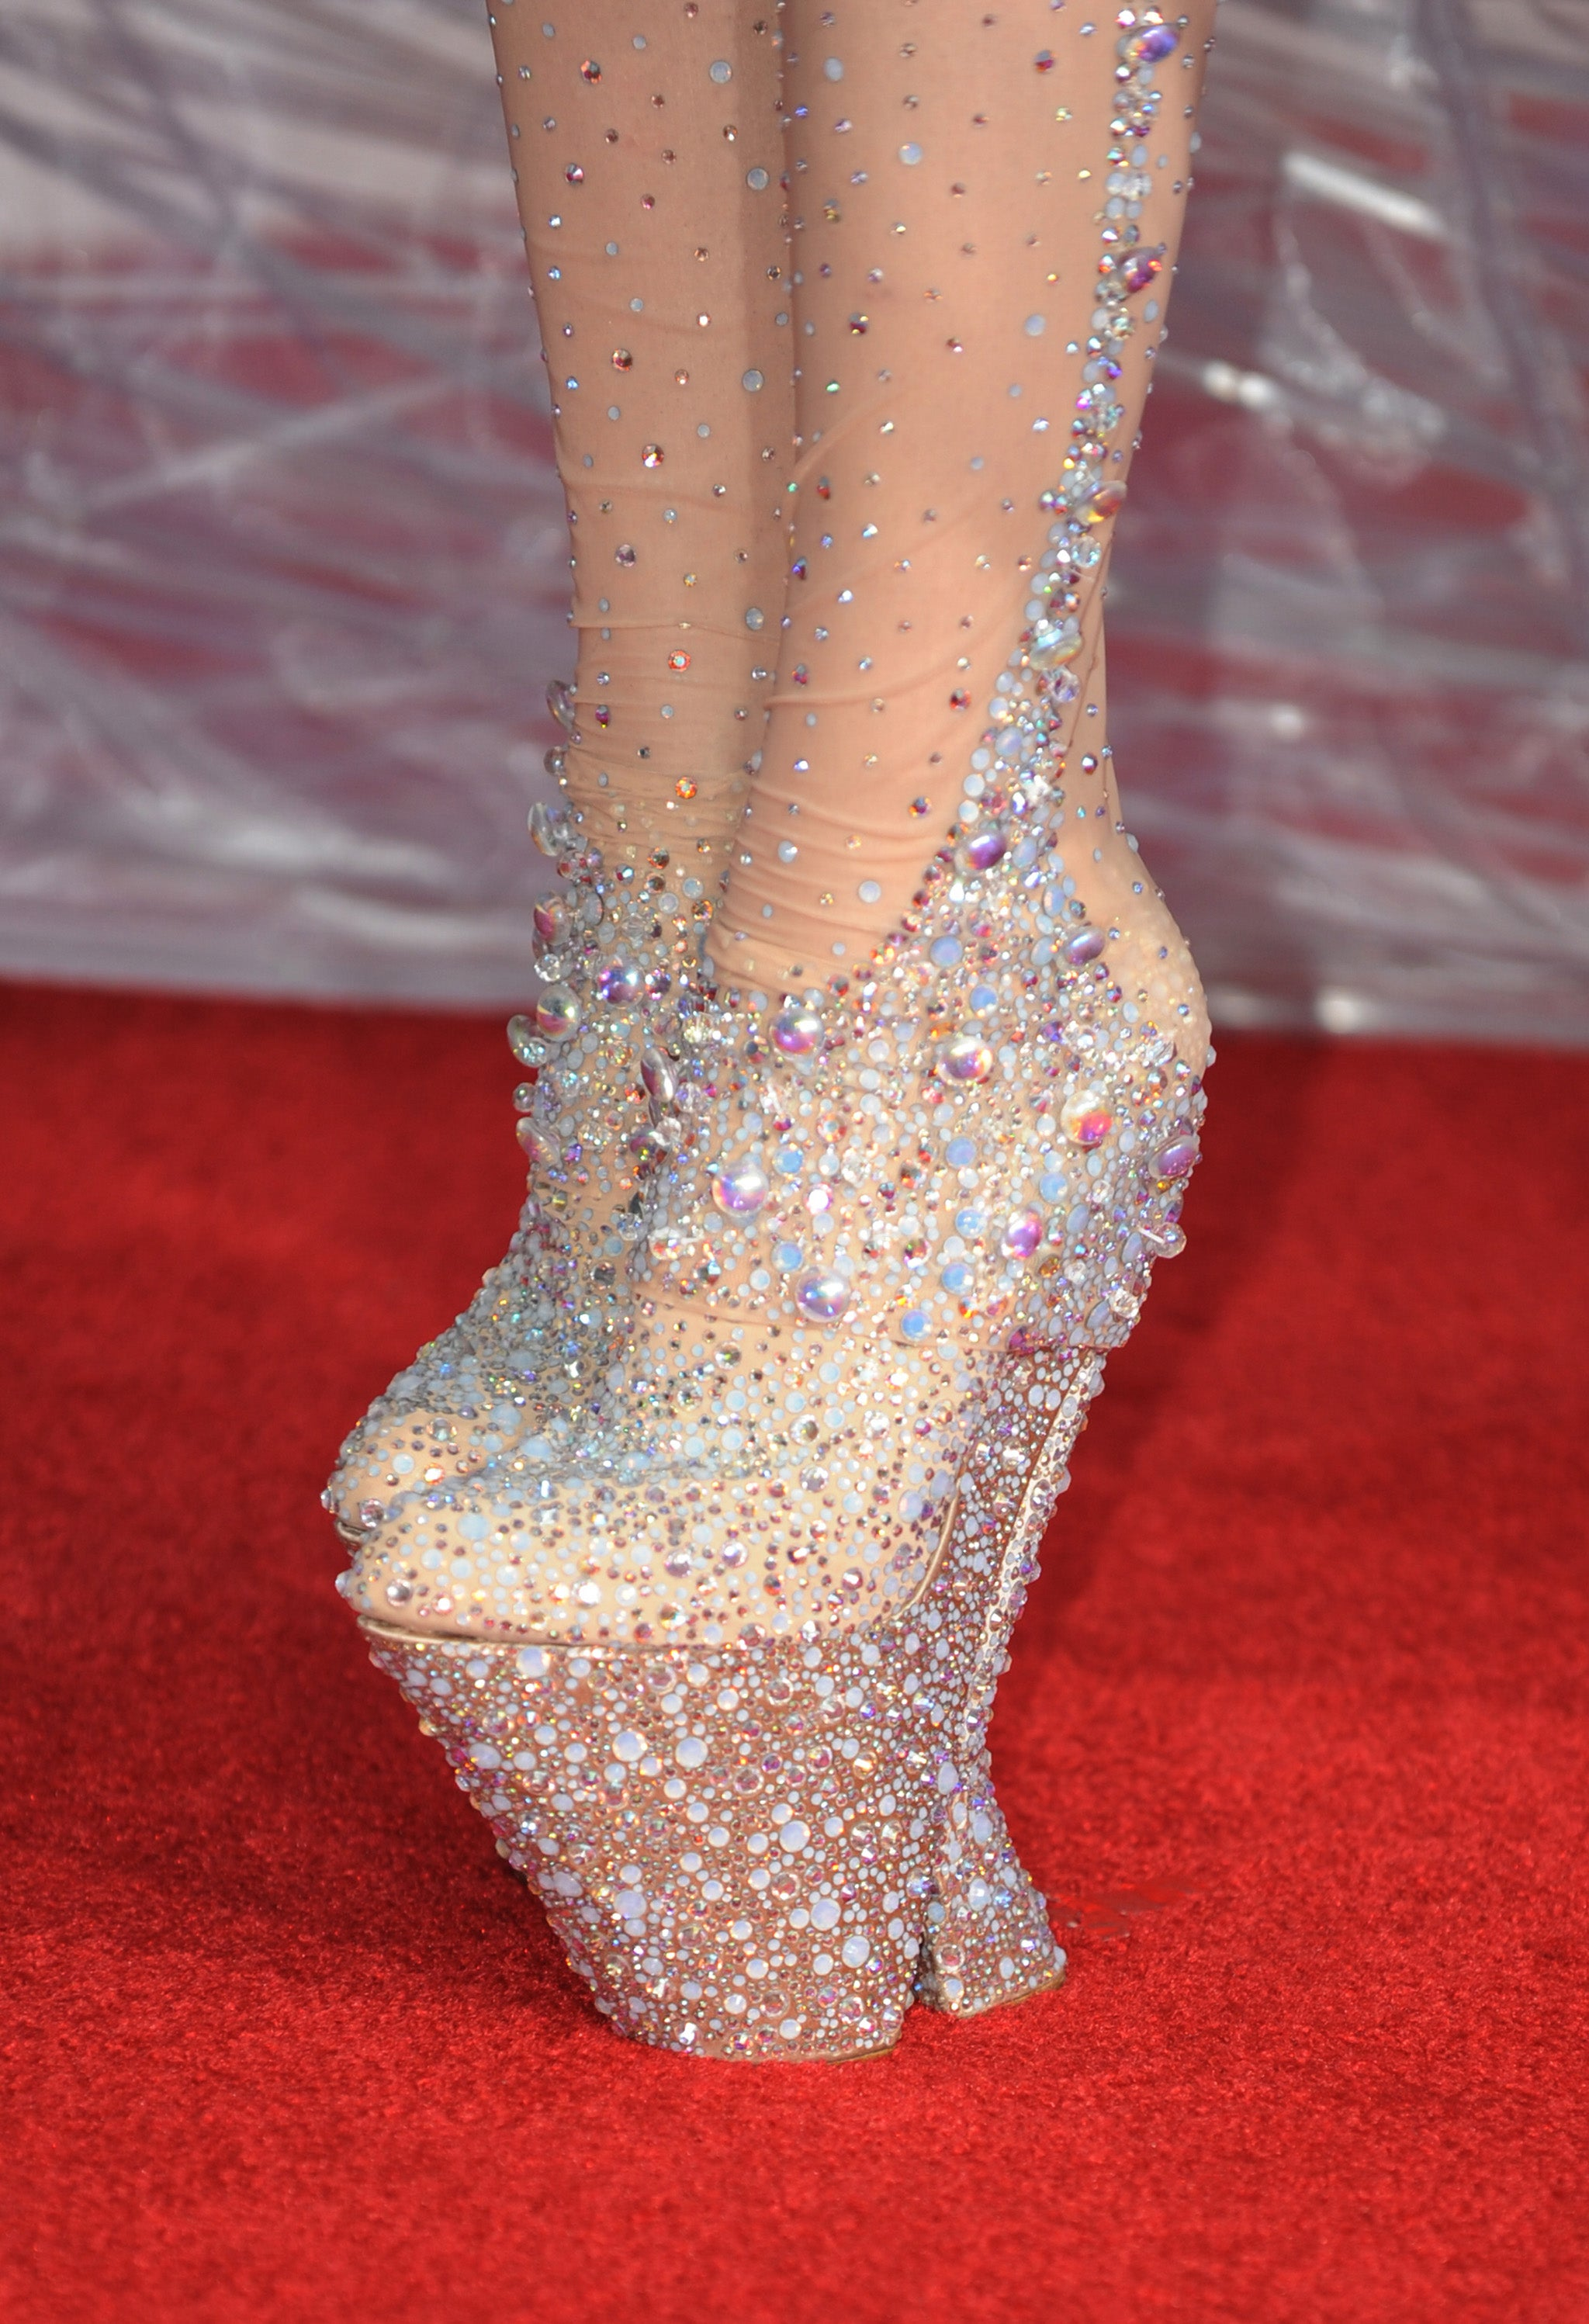 lady gaga left unable to walk could the shoes be the